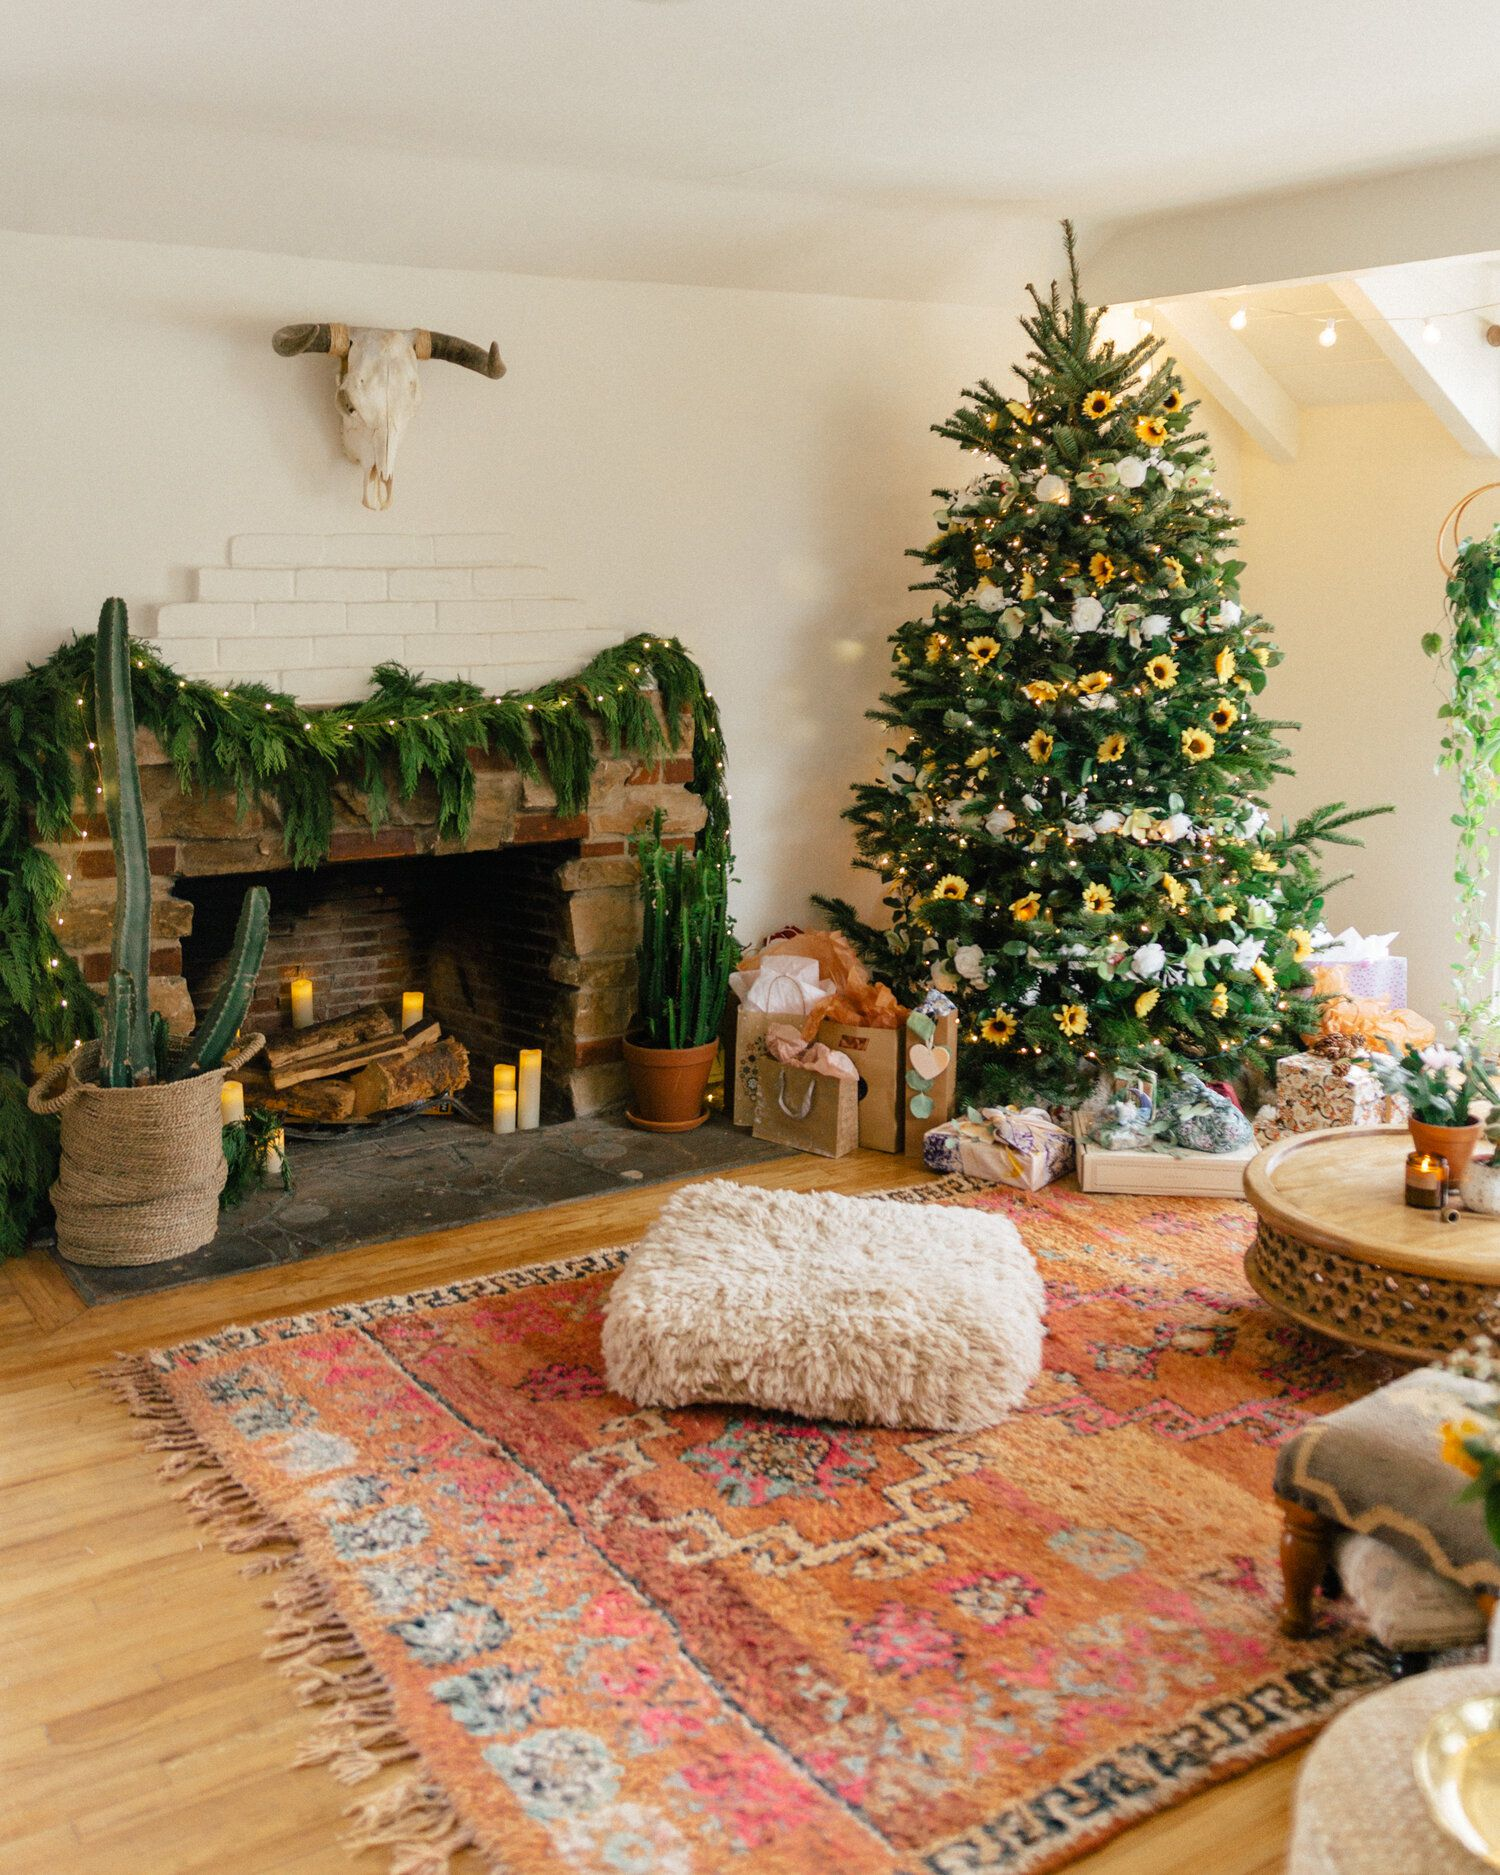 How To Use Natural Materials In Your Holiday Decor